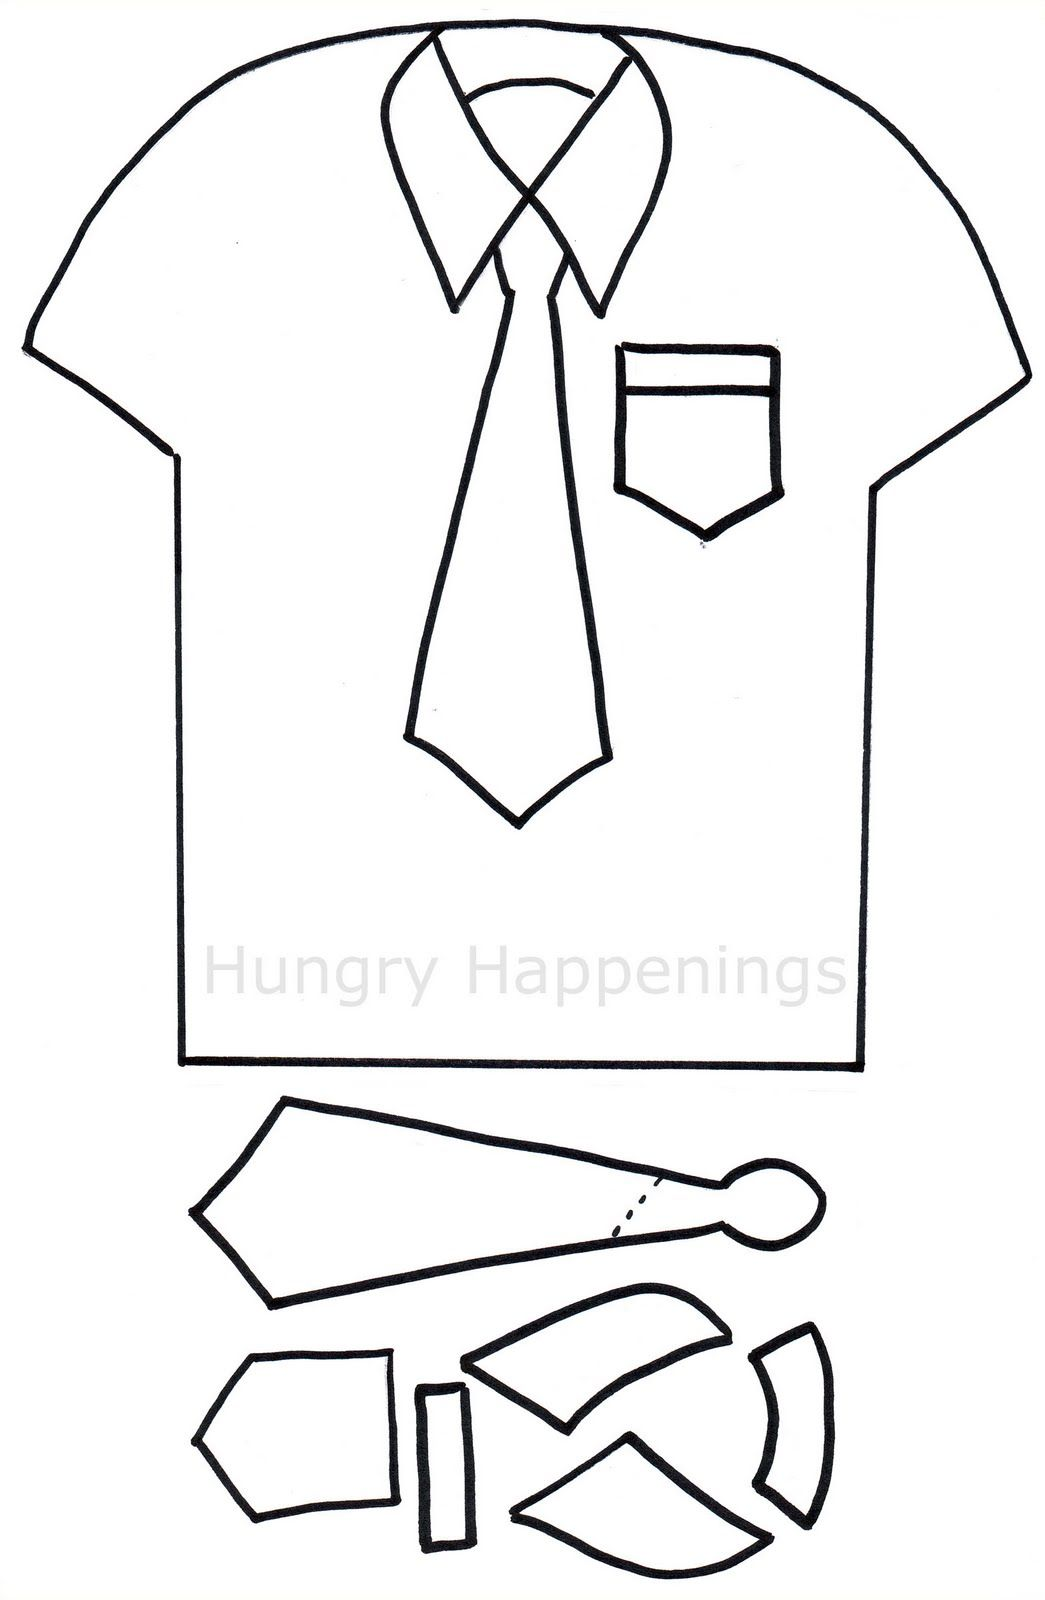 Fathers day tie clipart cakepops free printables svg download Shirt and Tie Pizza   Craft Ideas   Tie template, Fathers day, Shirt ... svg download